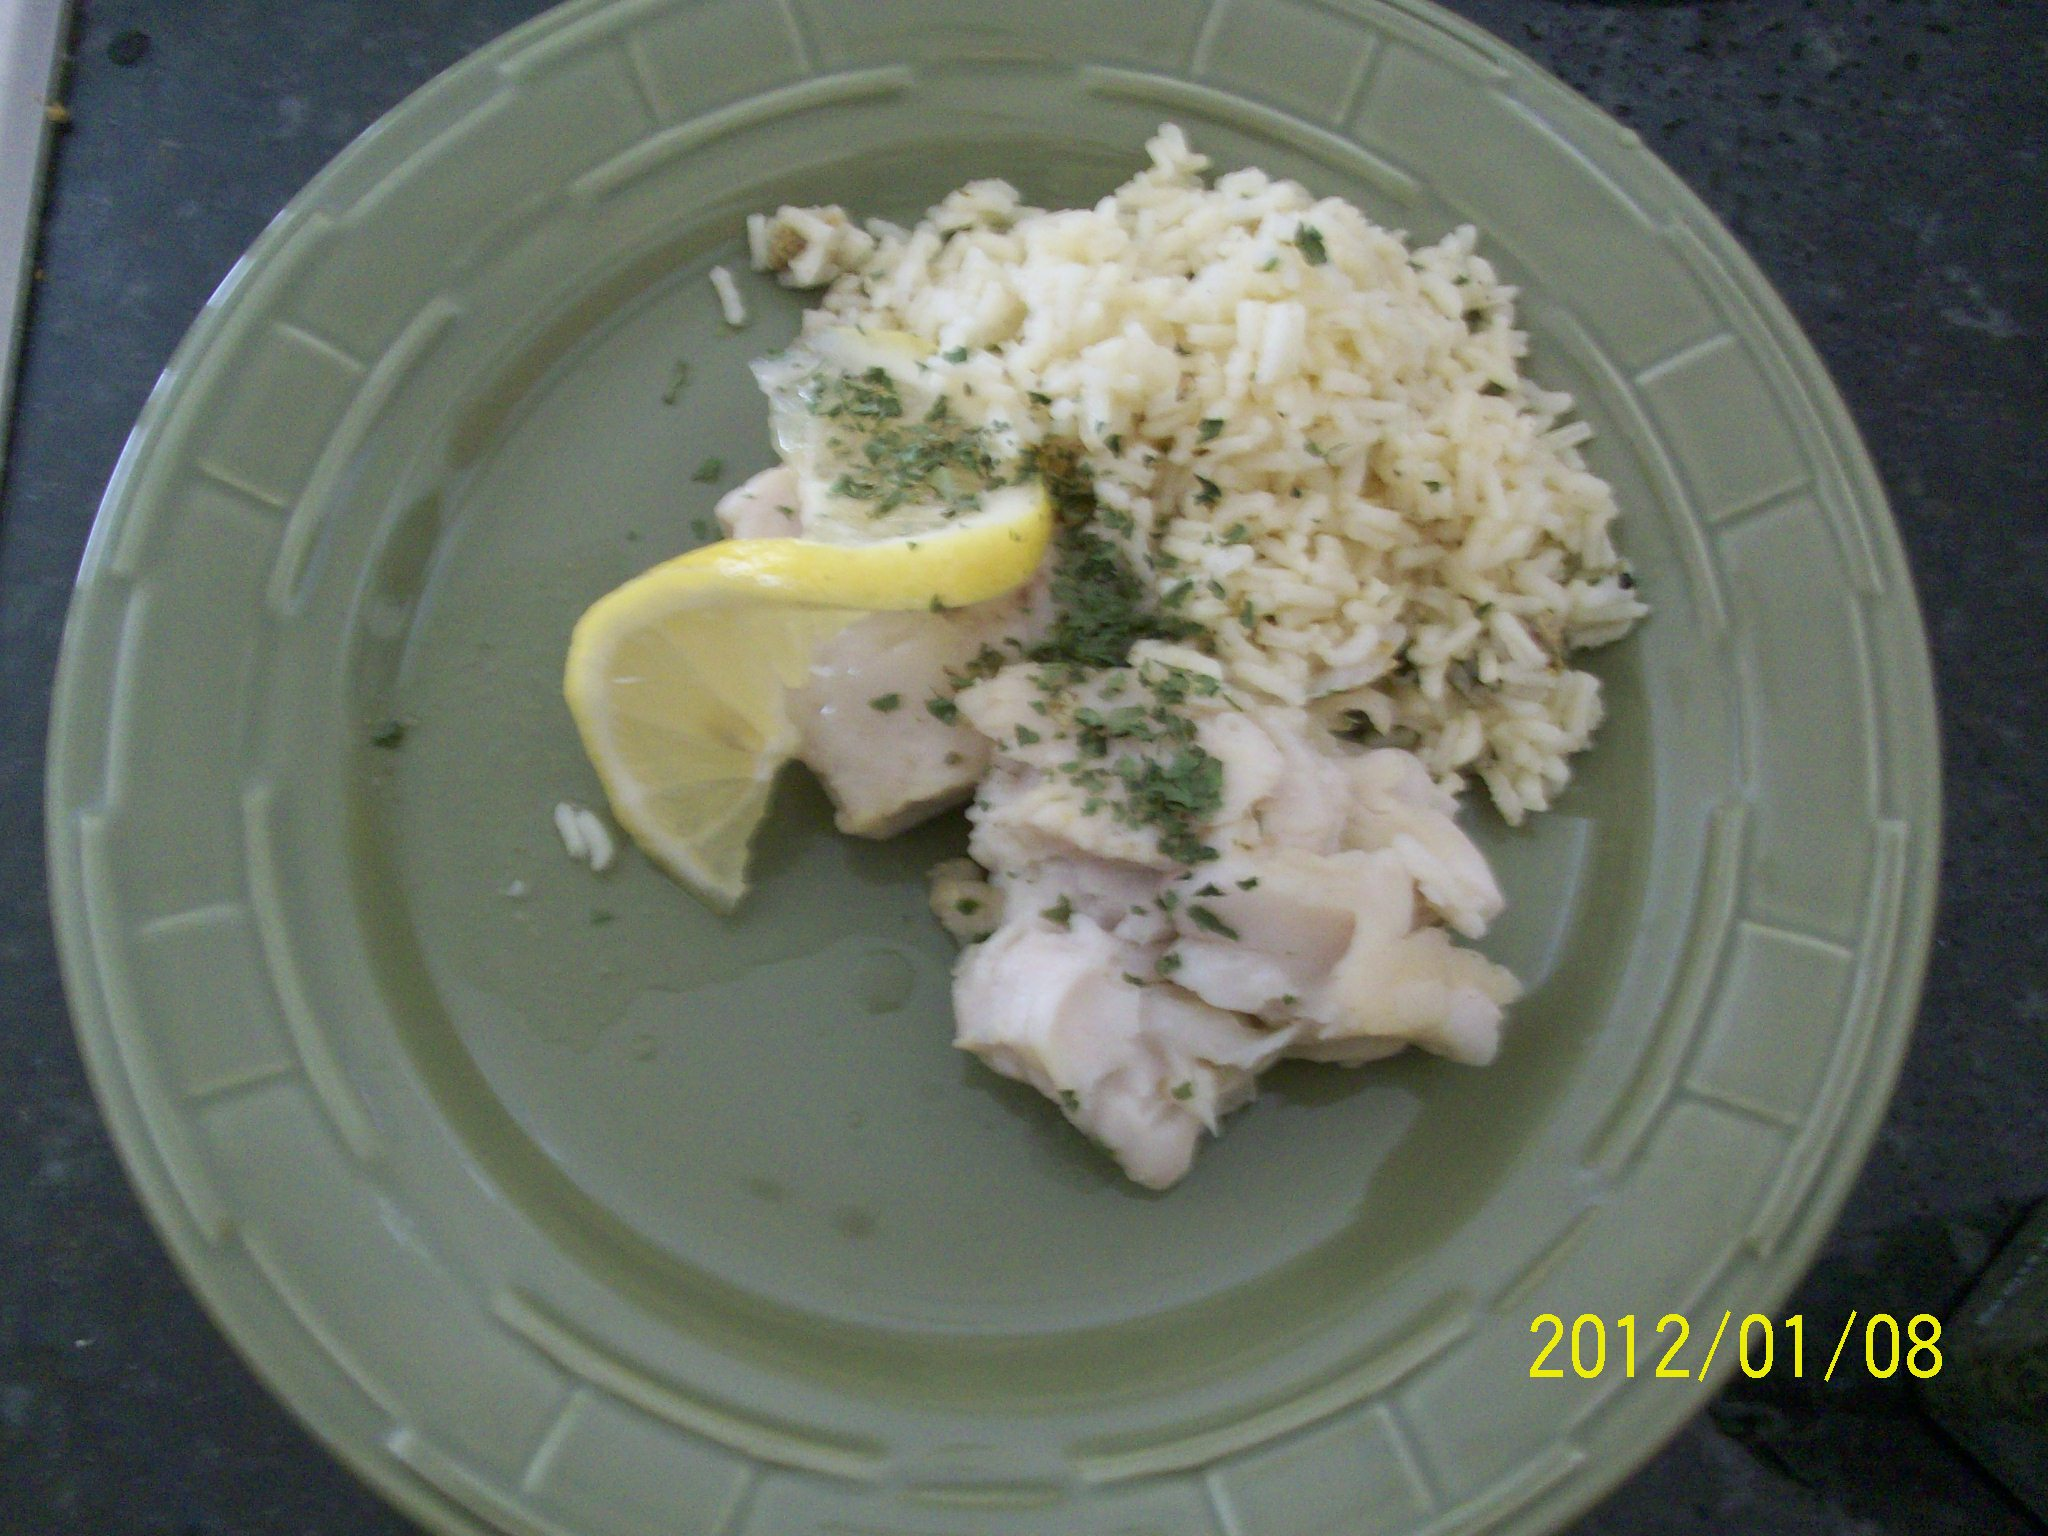 Gourmet Dishwasher Fish and Rice Dinner